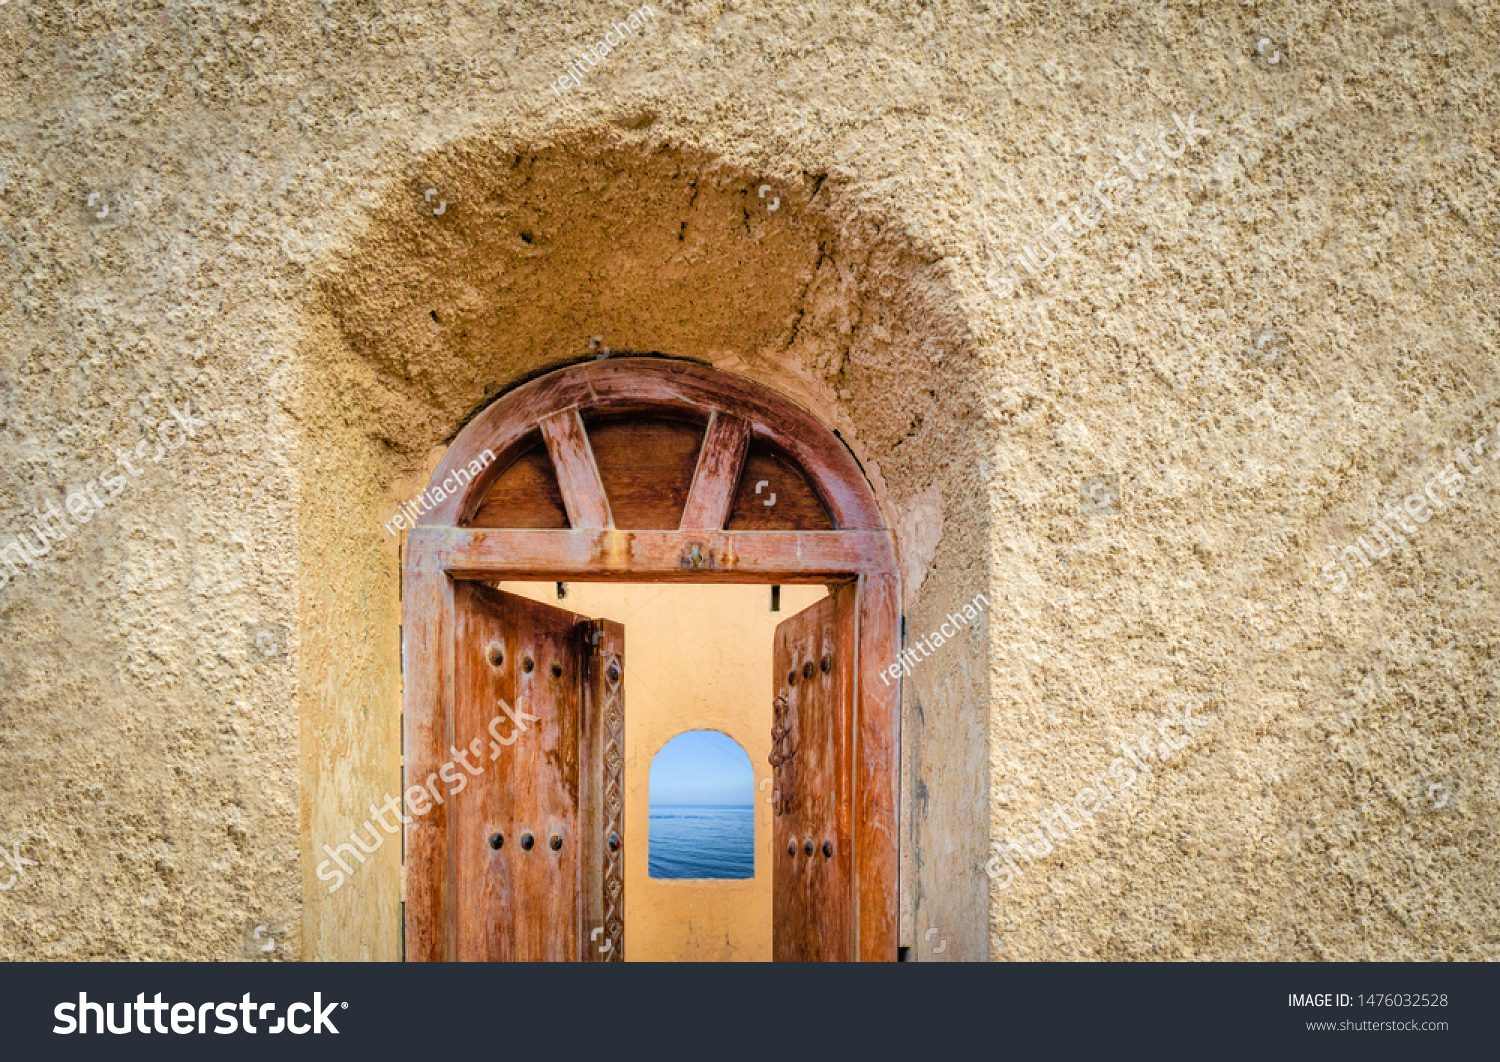 Old, antique door of a watchtower opening to reveal a arch window to the sea. From Muscat, Oman.